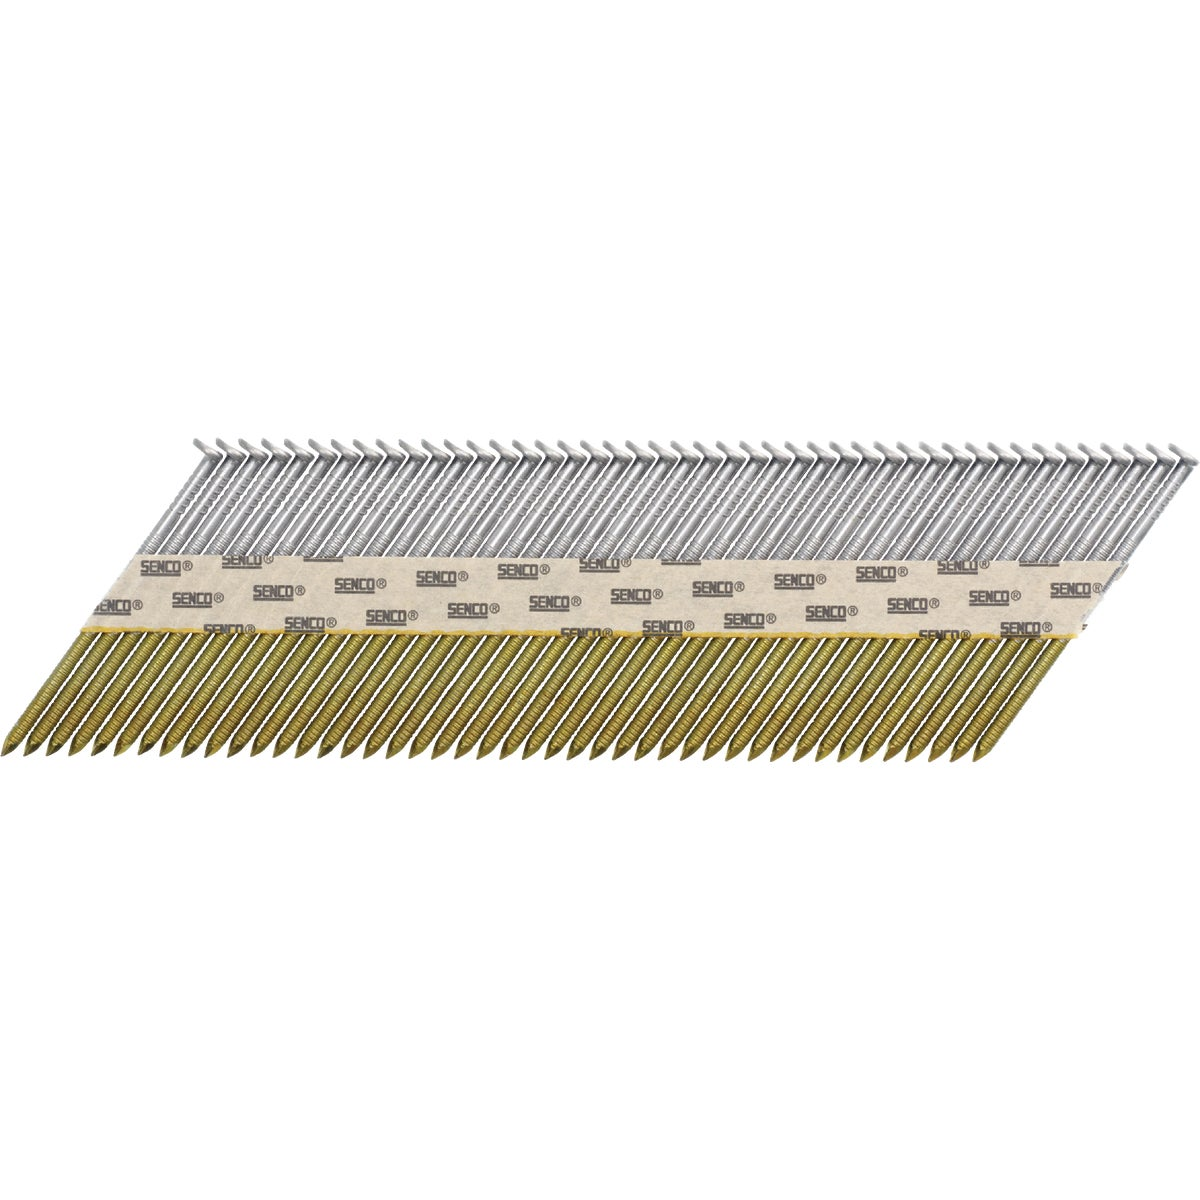 "2-3/8"" FRAMING NAIL - GE24APBX by Senco Brands"